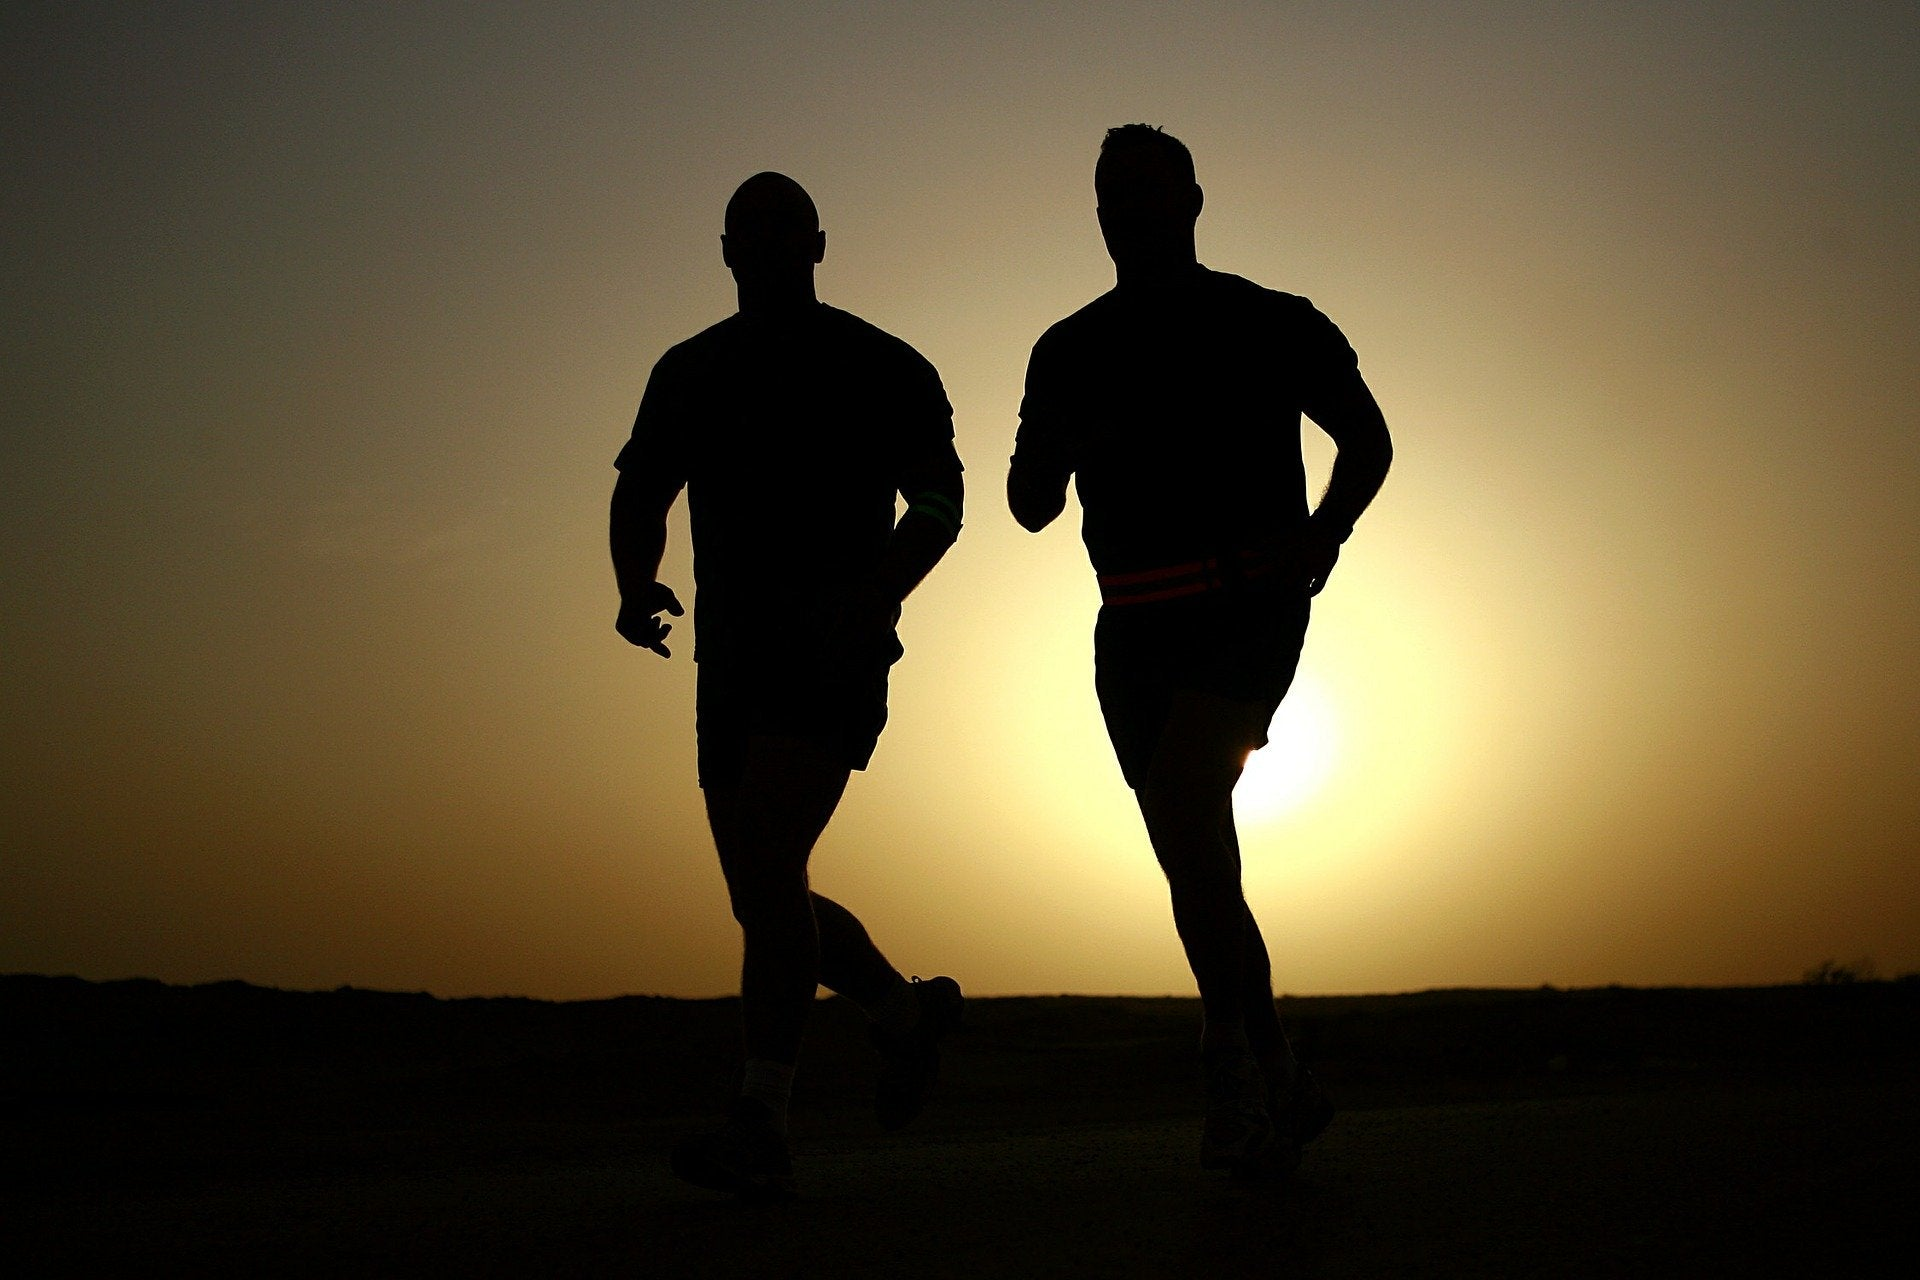 Runners and Sunrise